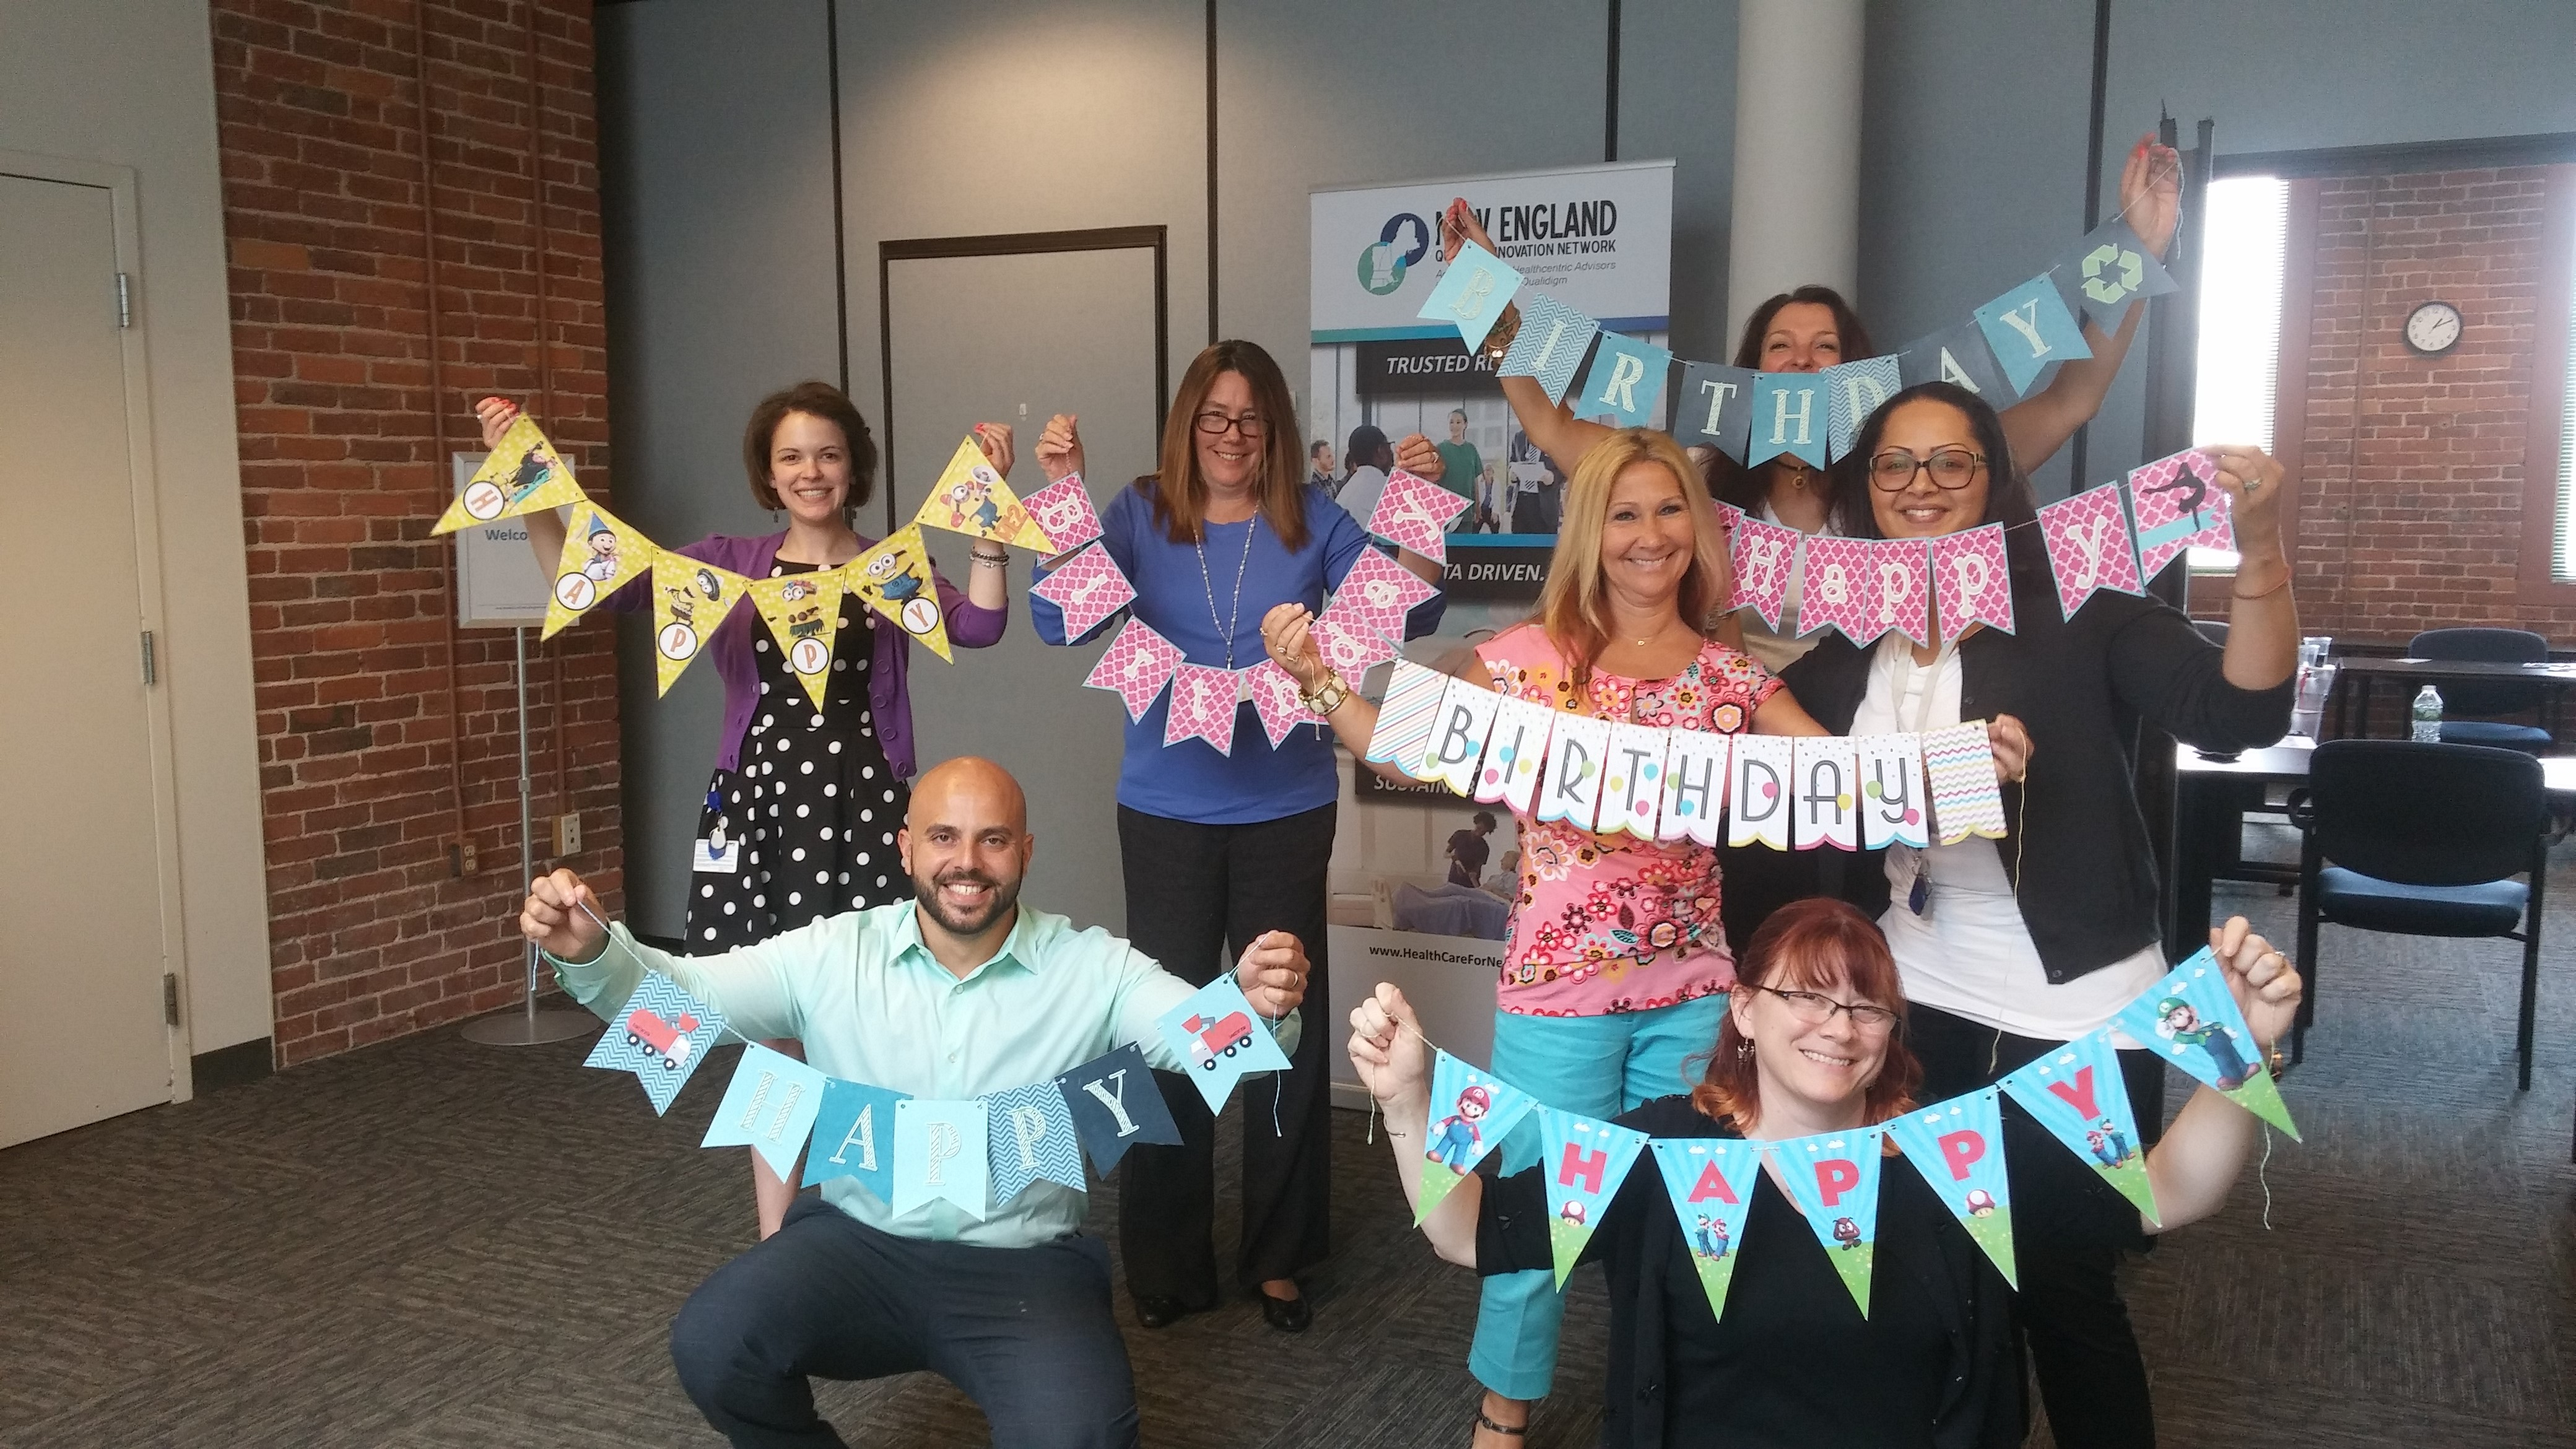 Volunteering with the Confetti Foundation to create birthday banners and cards for children who spend birthdays in the hospital